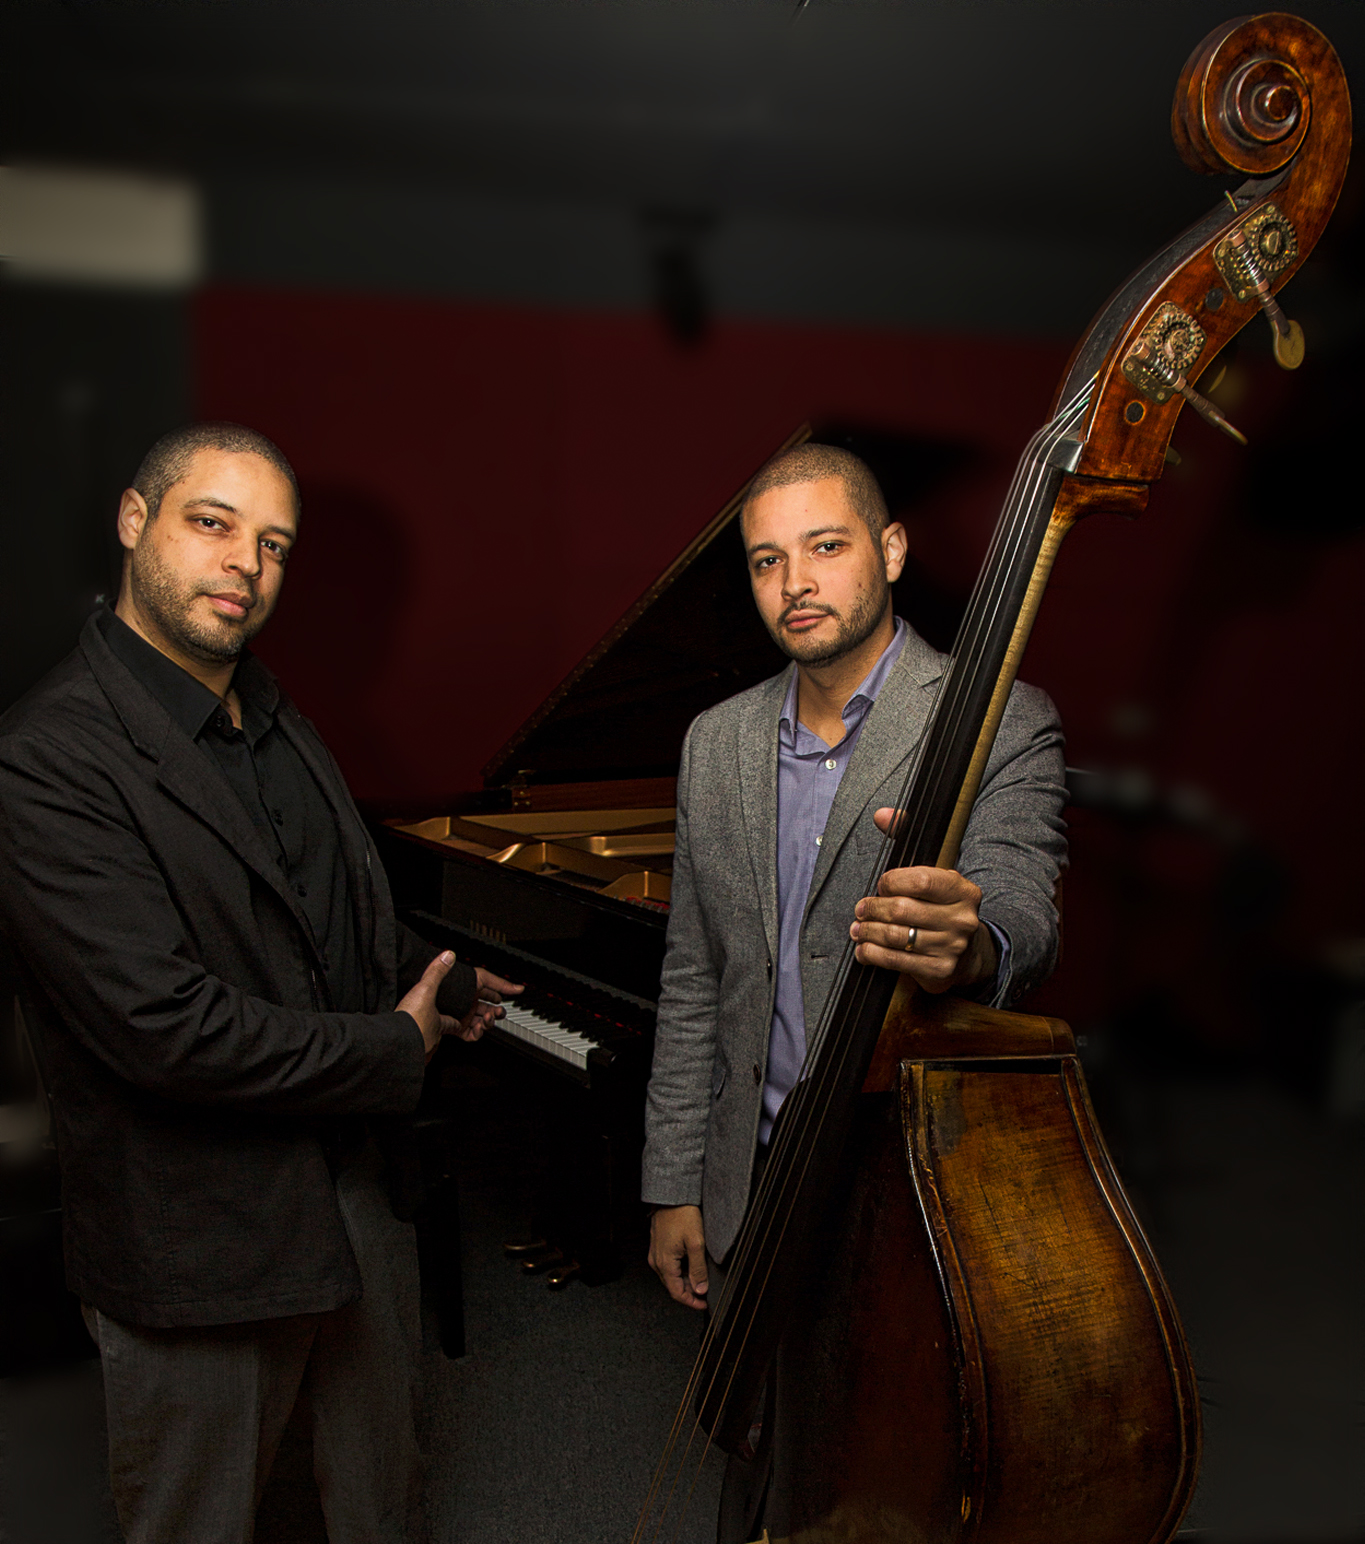 REVIEW: The Curtis Brothers' 'Algorithm' Reviewed by Jazz Trail